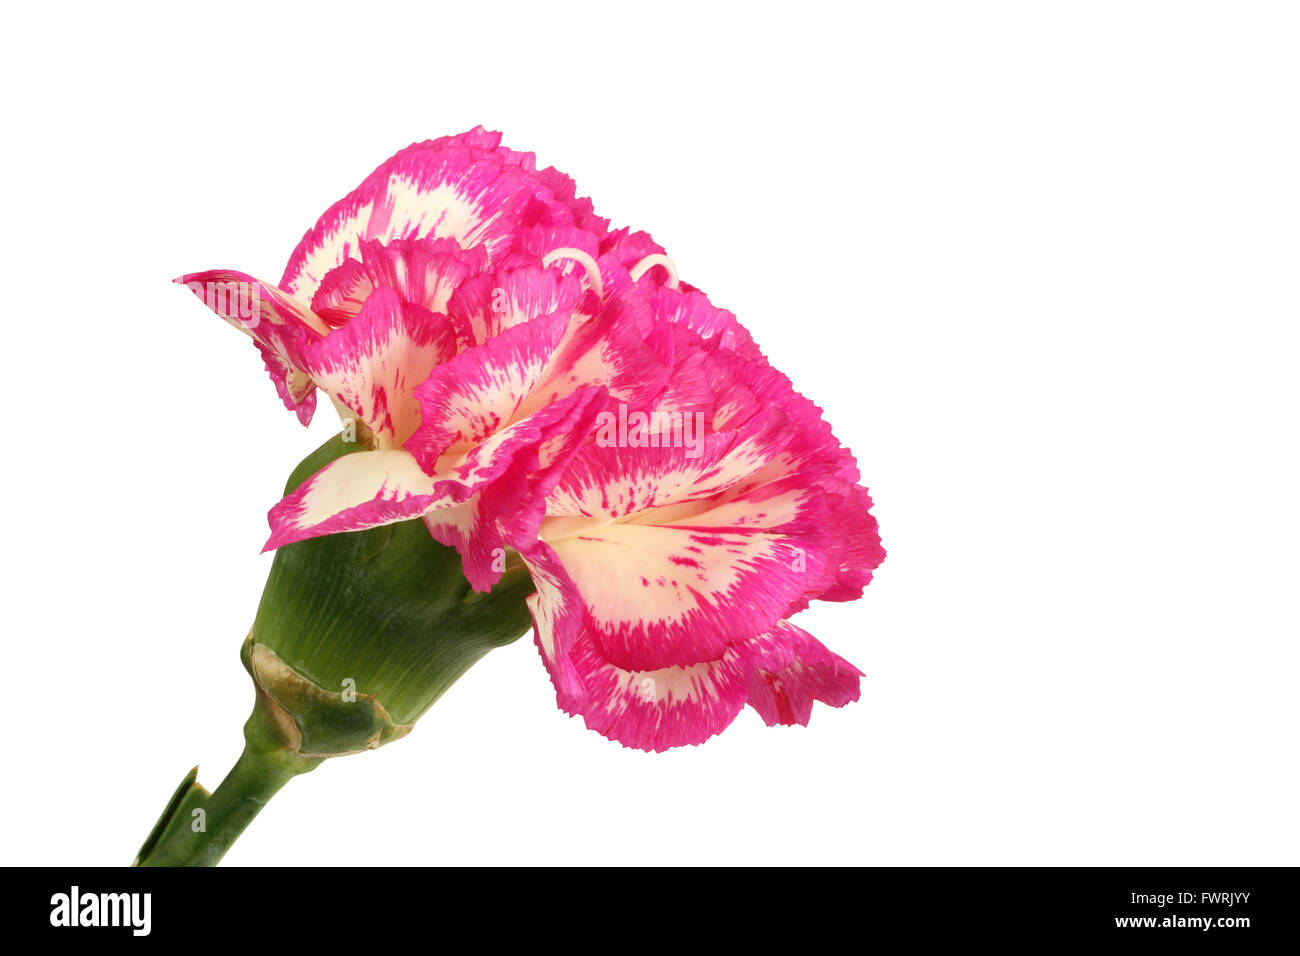 White carnation with magenta edges of petals isolated on white background - Stock Image